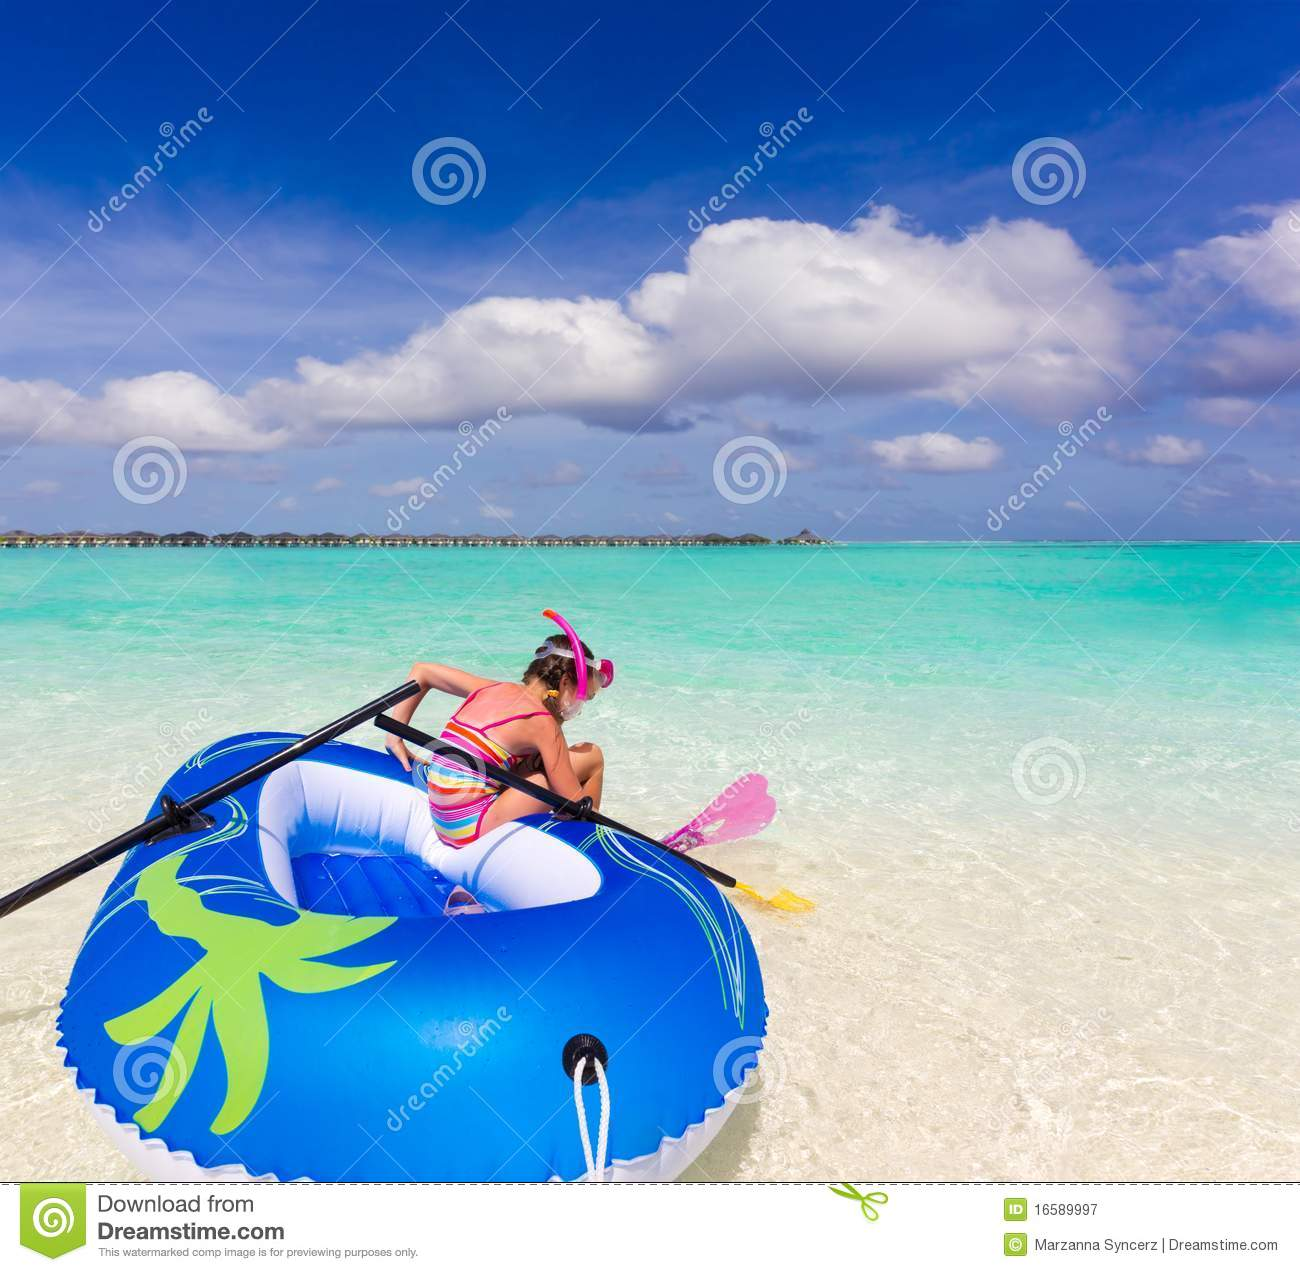 images of Girl In Ocean Royalty Free Stock Photography Image 16589997